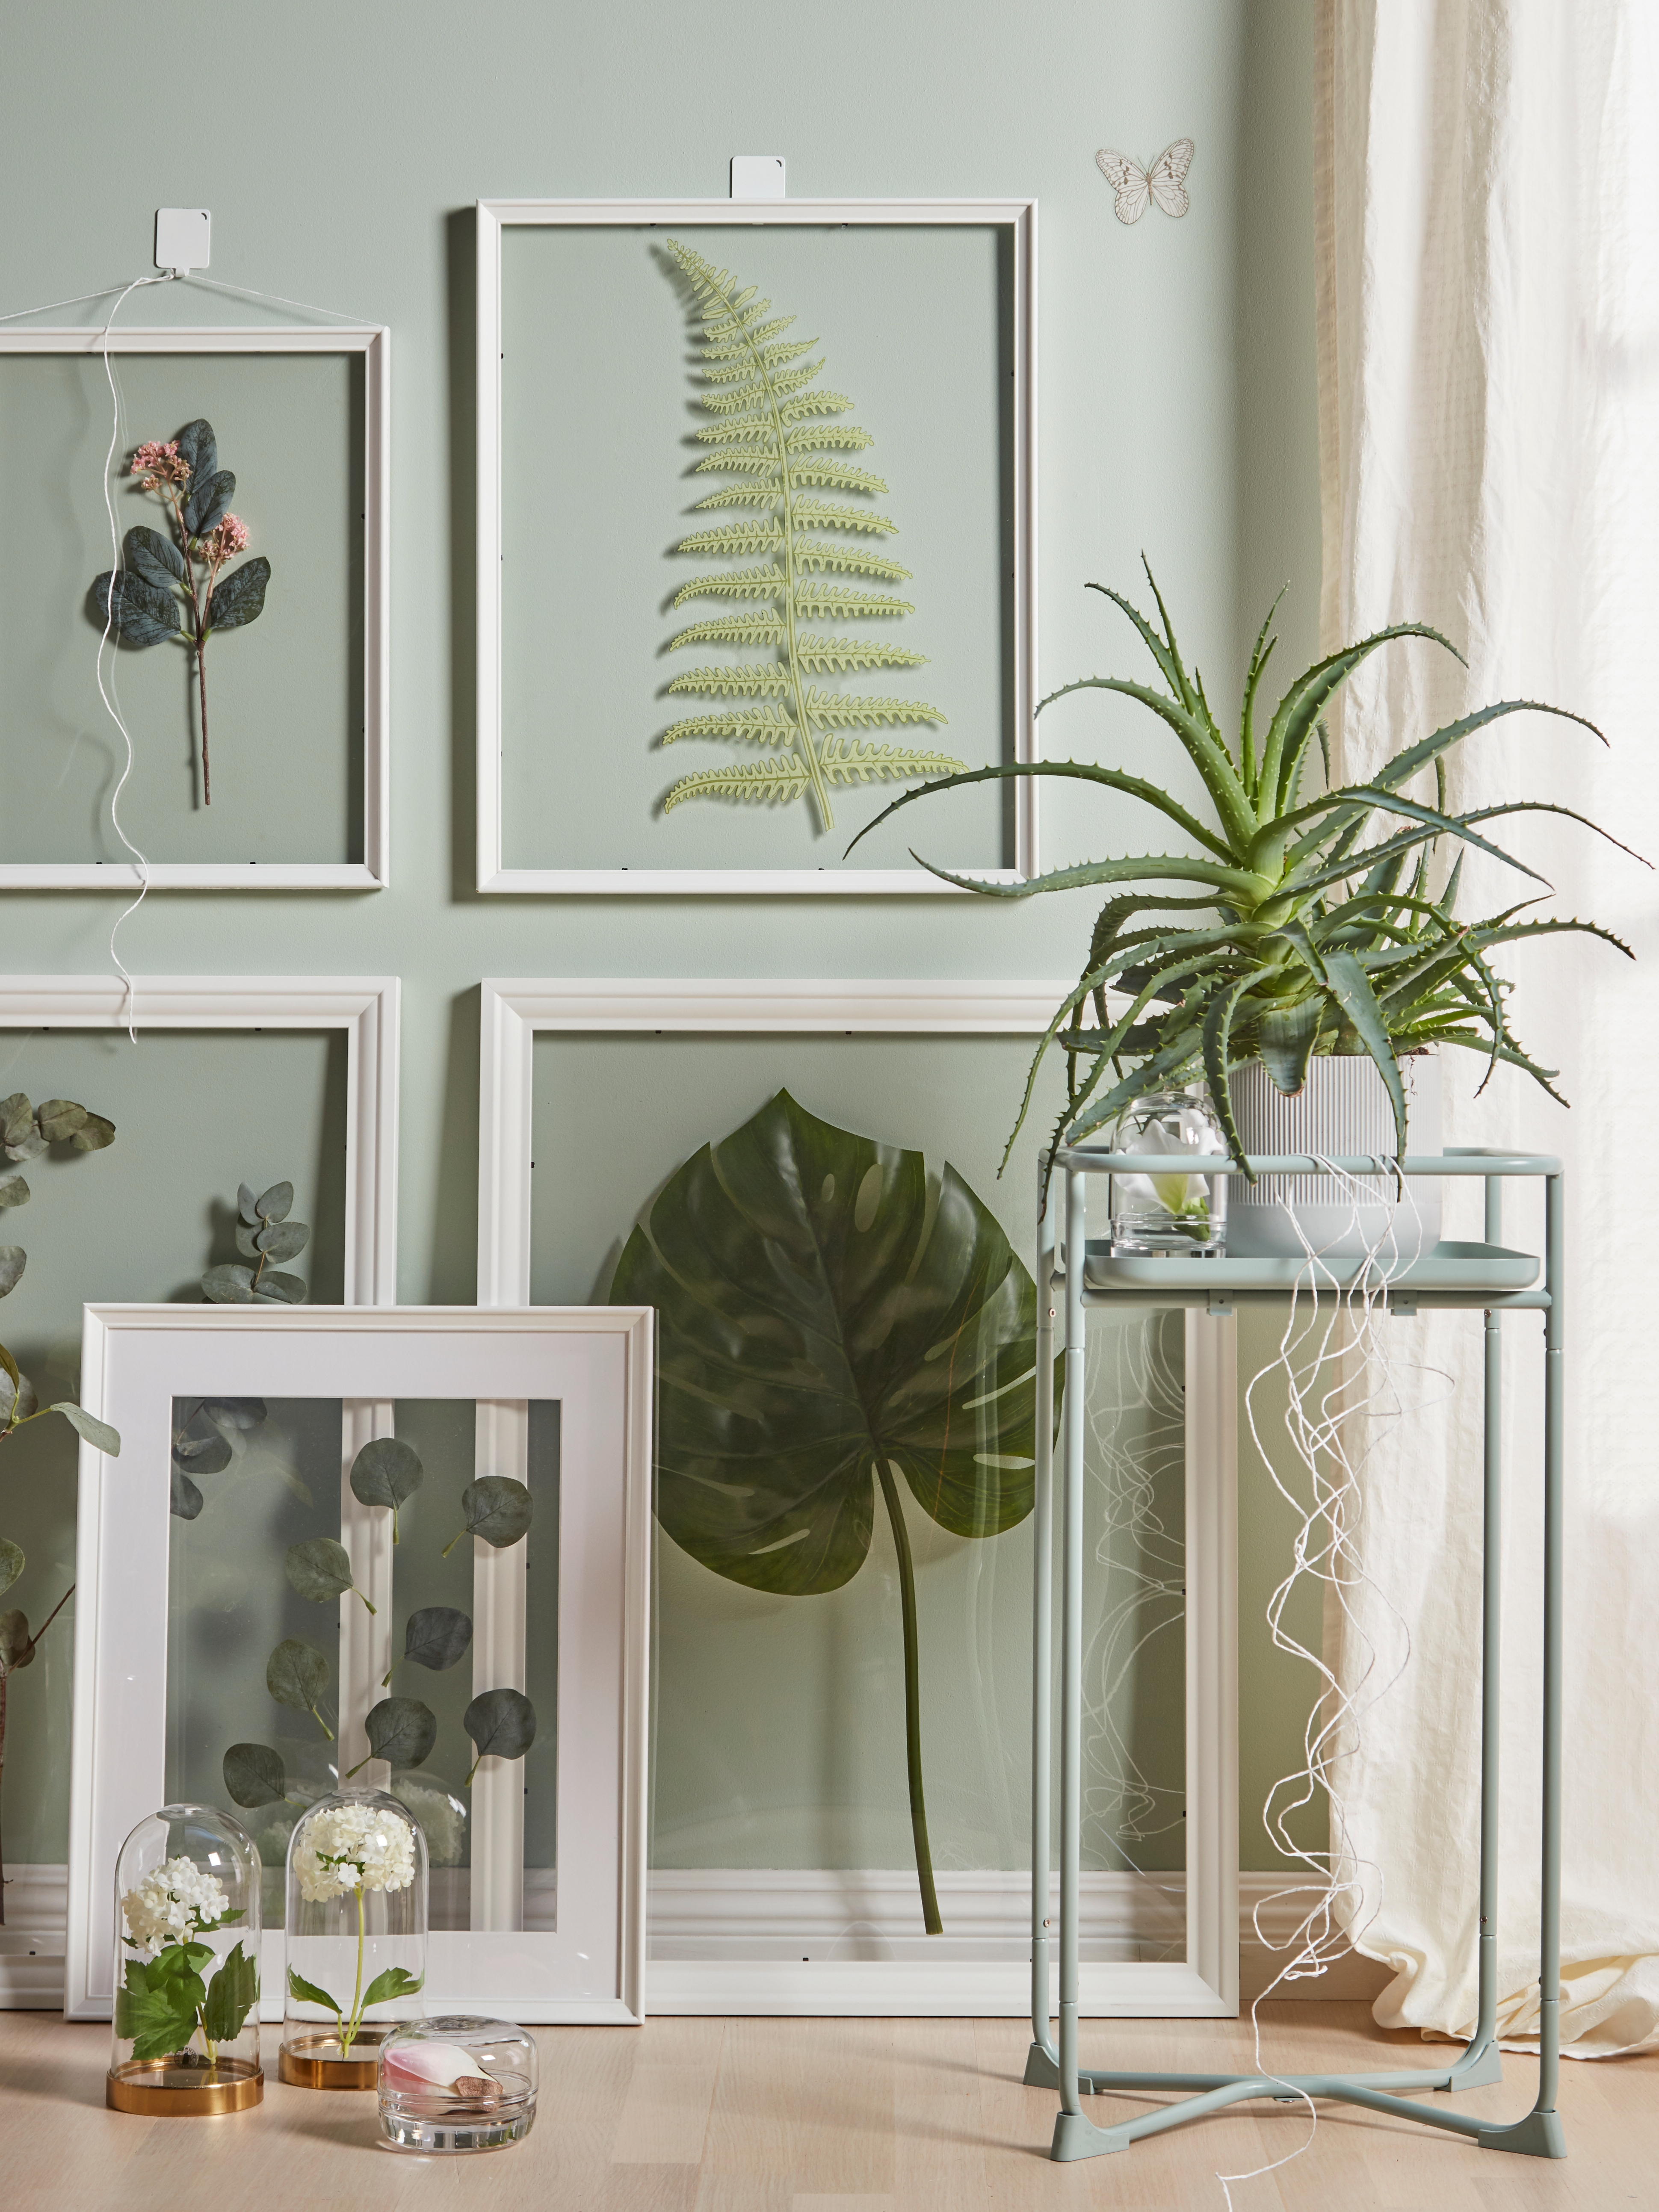 EDSBRUK frames with green plants behind a plant stand and glass domes containing flowers.